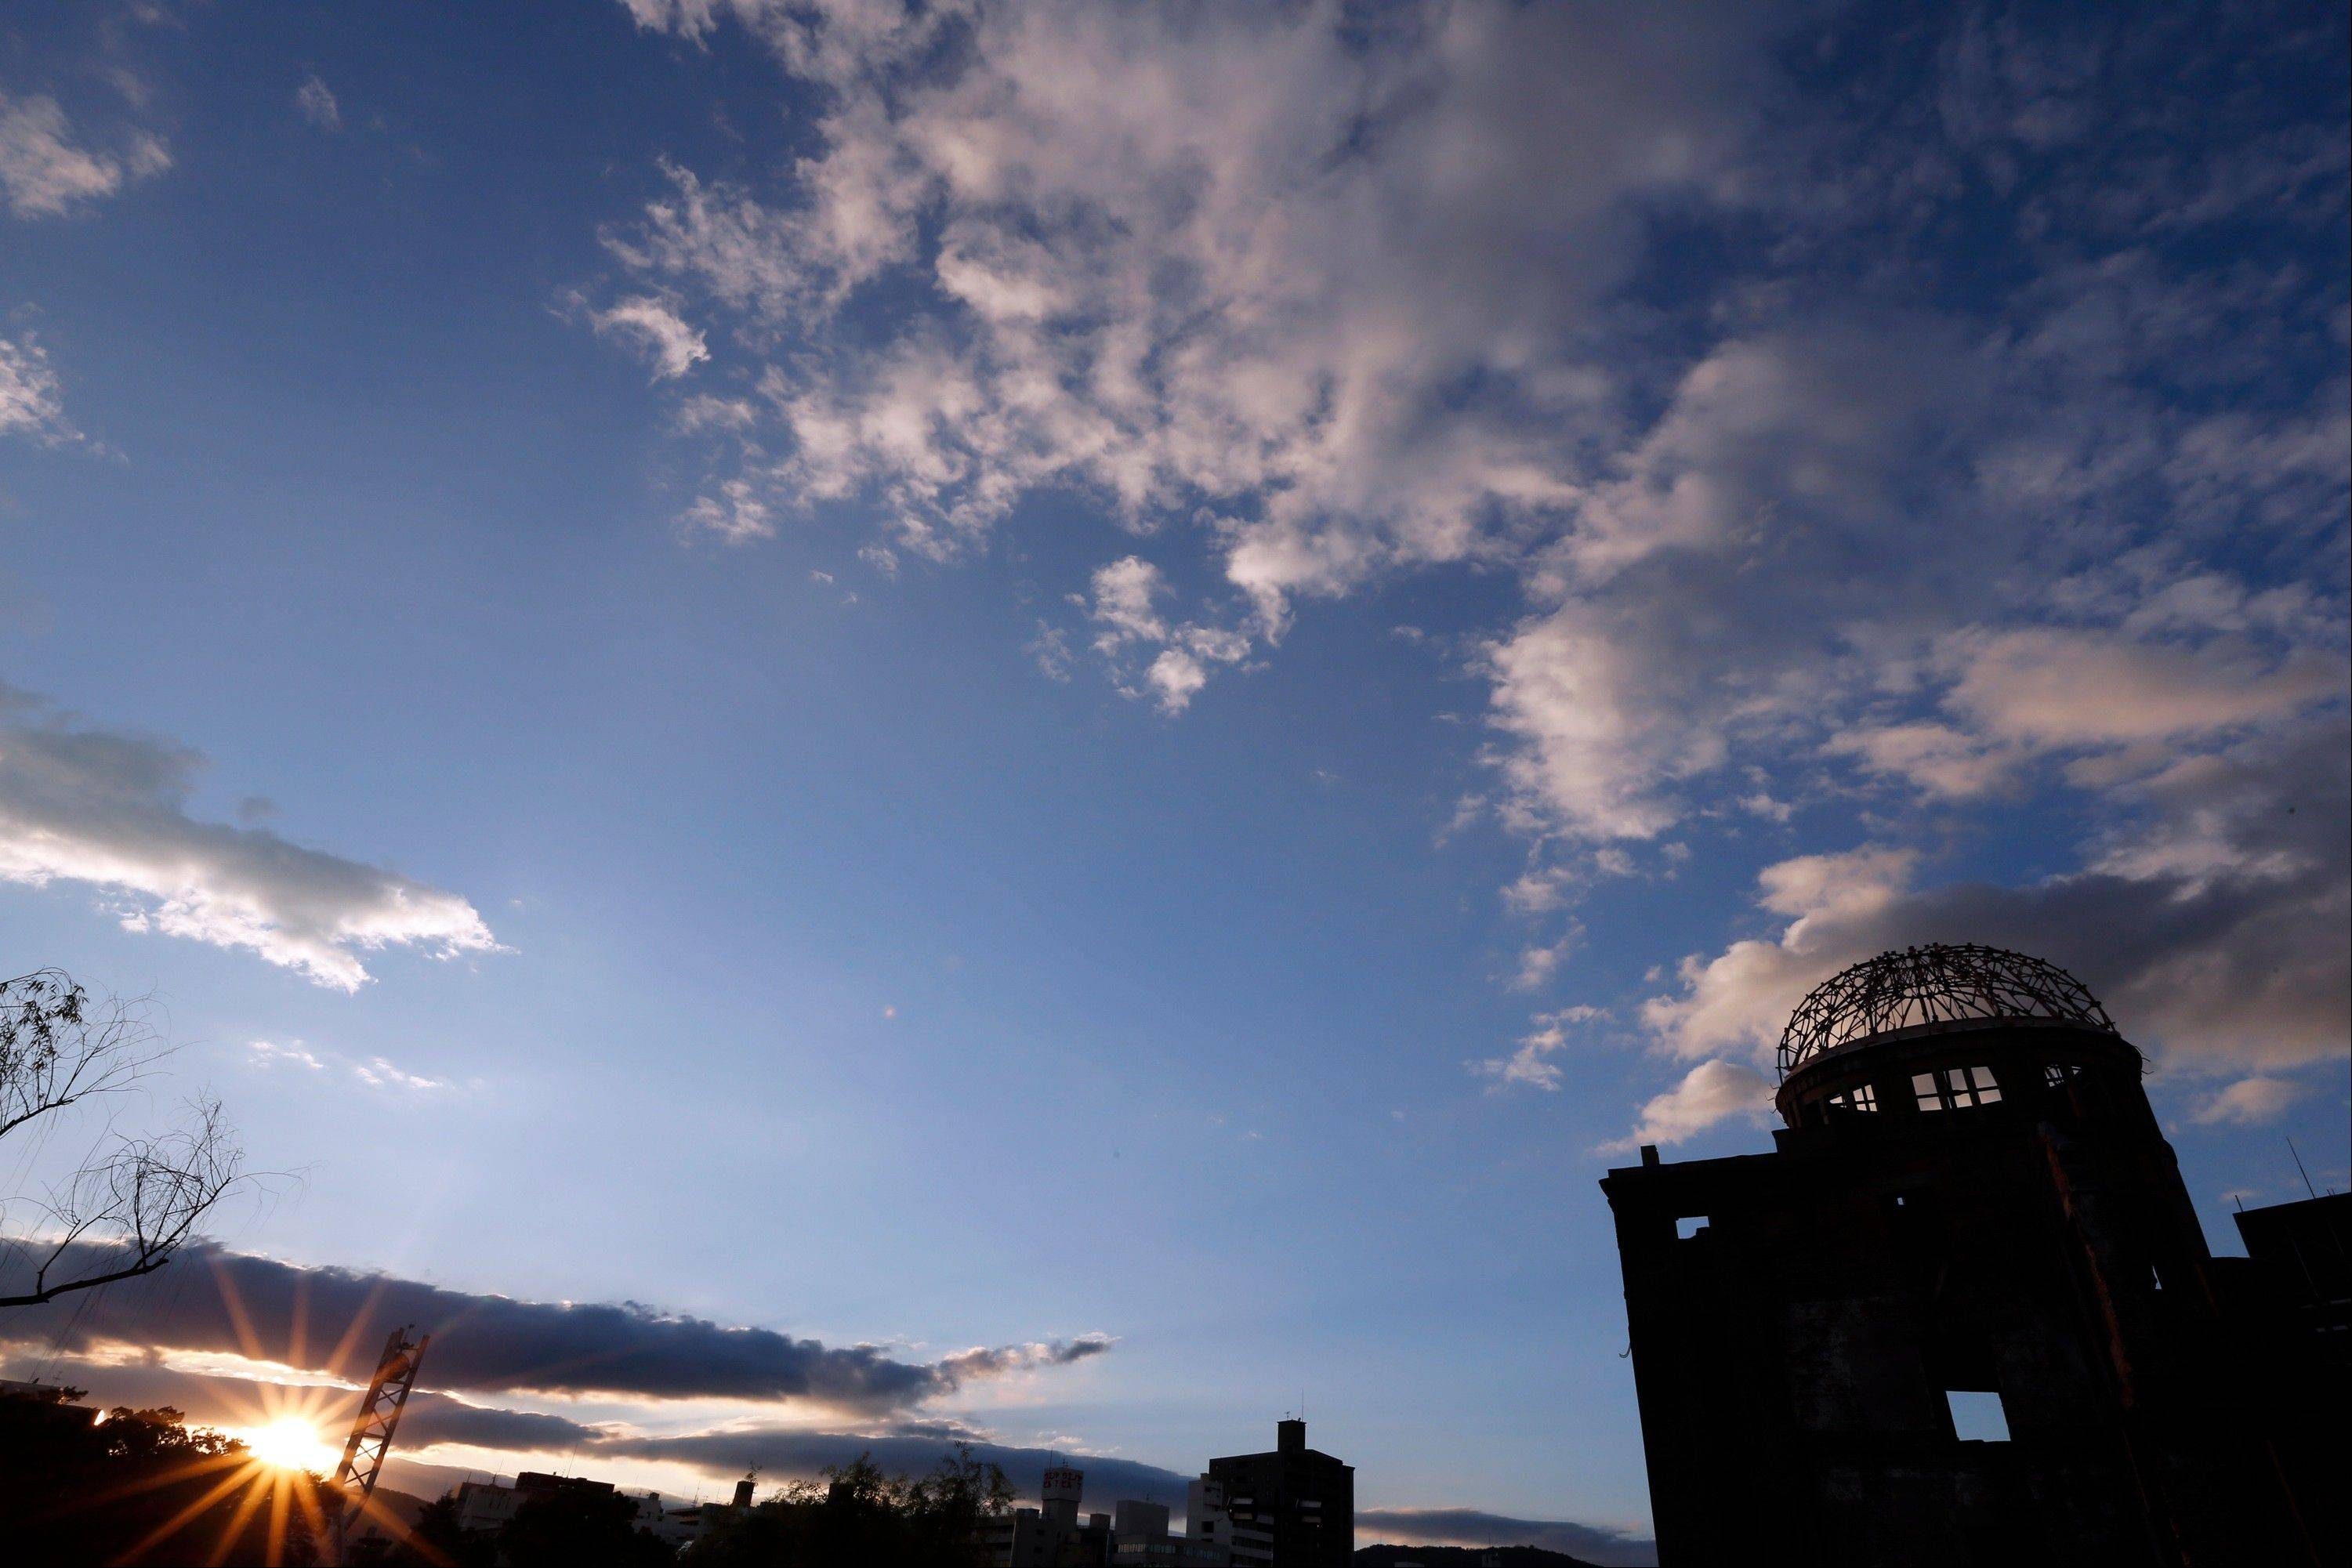 The sun sets by the gutted Atomic Bomb Dome, right, in Hiroshima, western Japan, Saturday, Aug. 4, 2012. Hiroshima marks the 67th anniversary of the atomic bombing on Aug. 6.